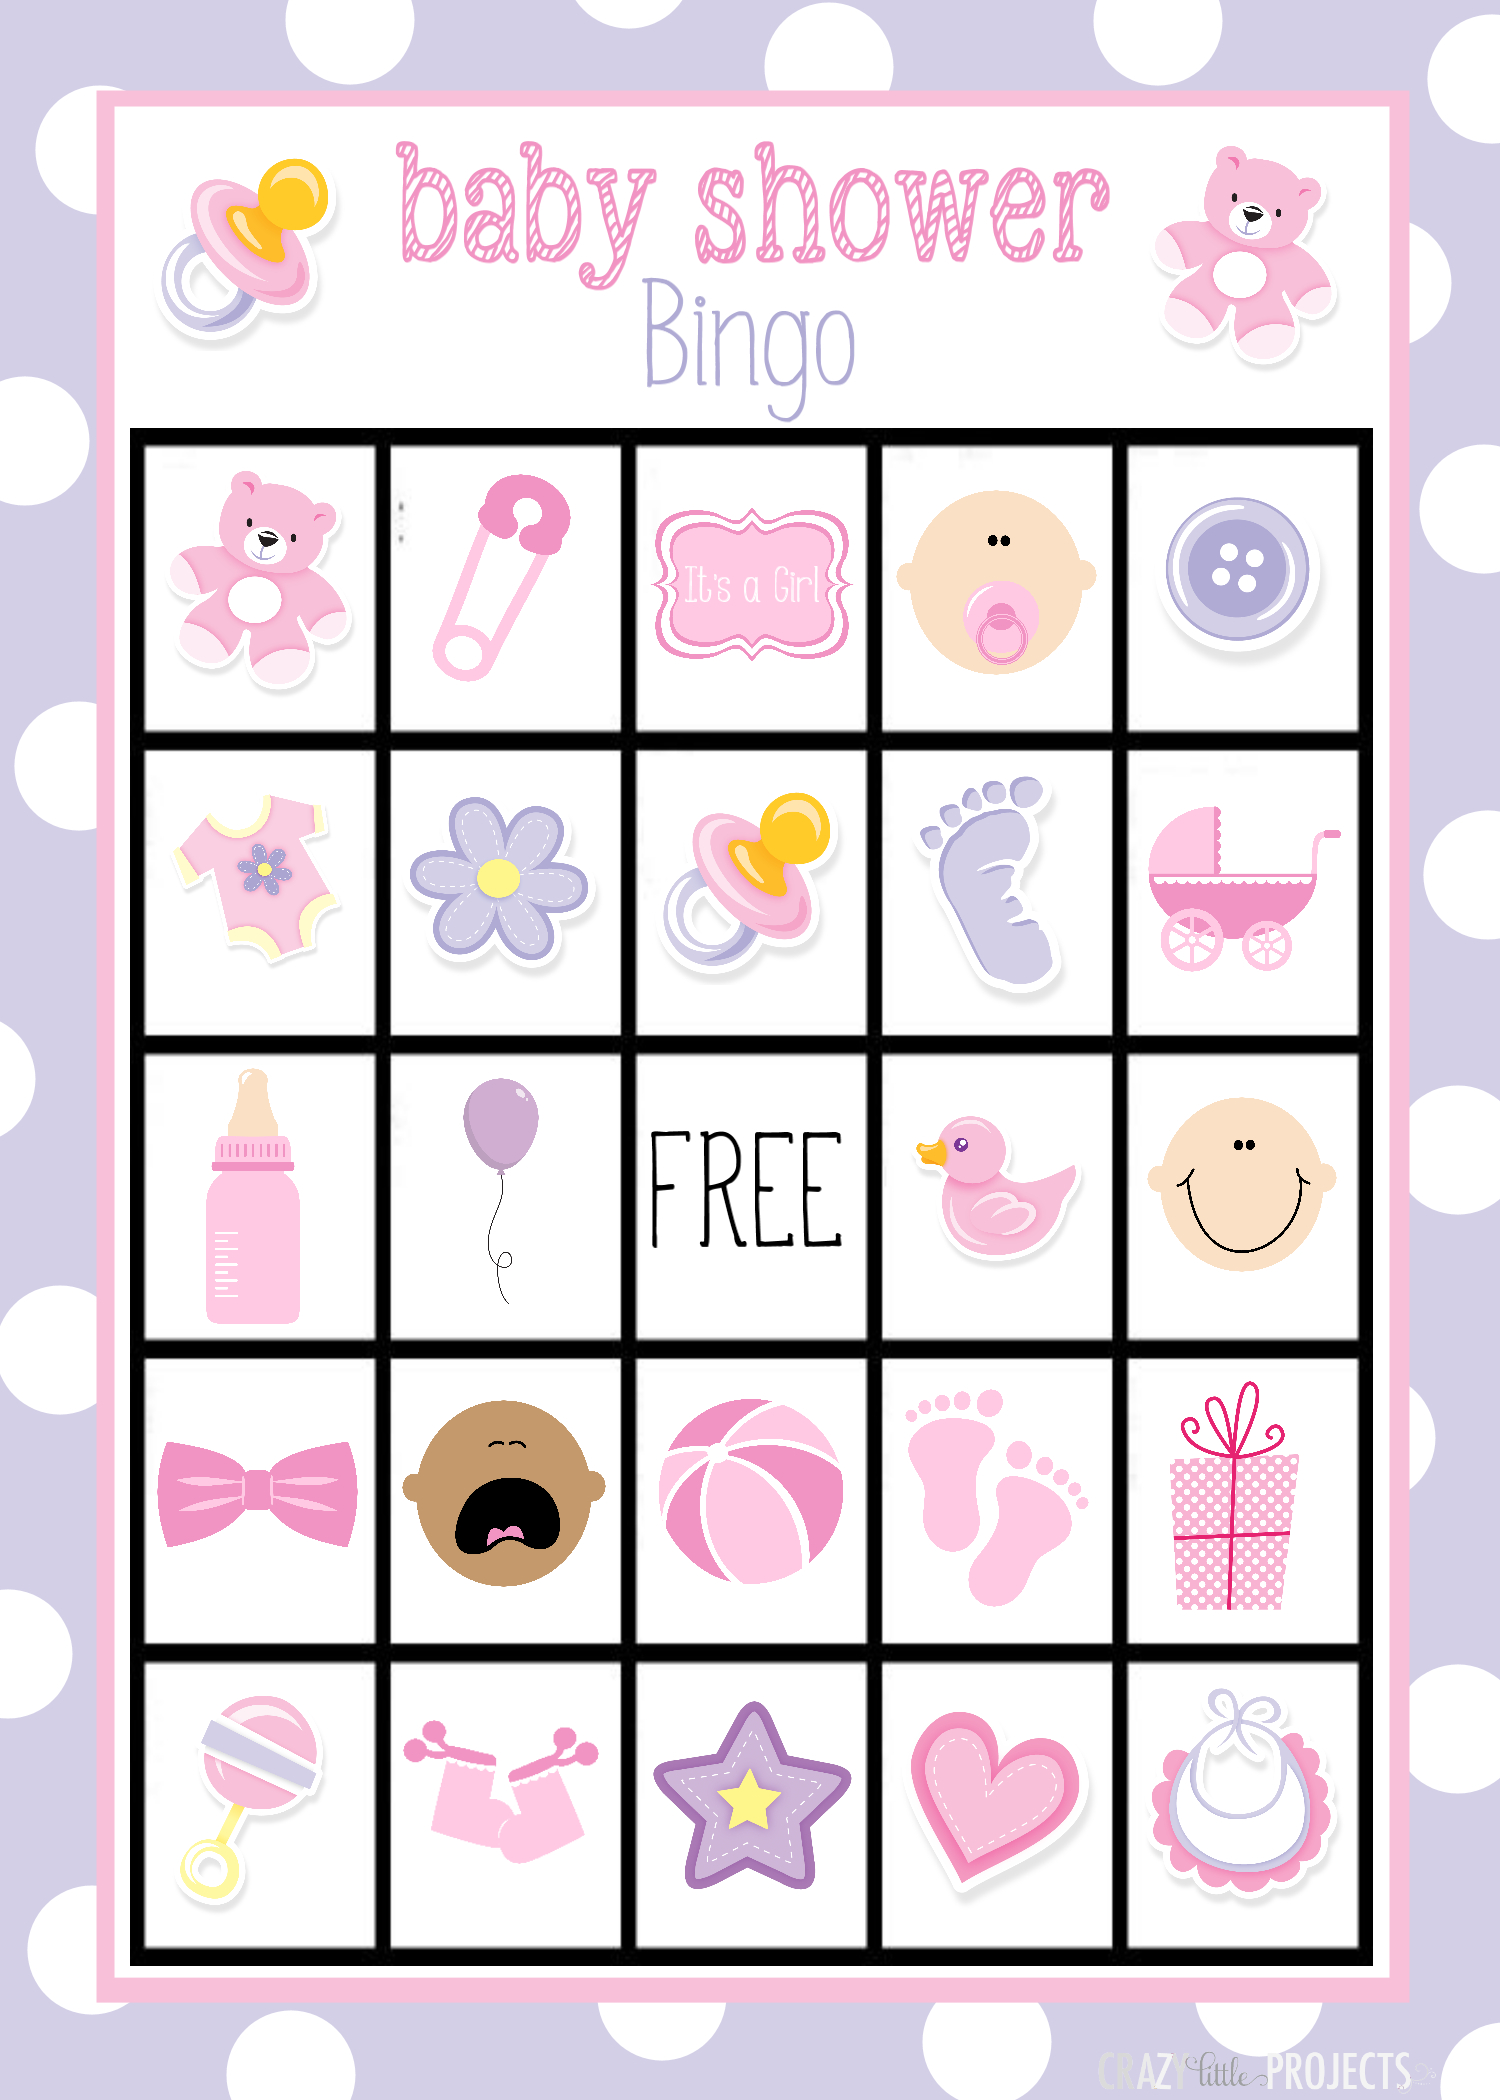 Baby Shower Bingo Cards - Baby Bingo Free Printable